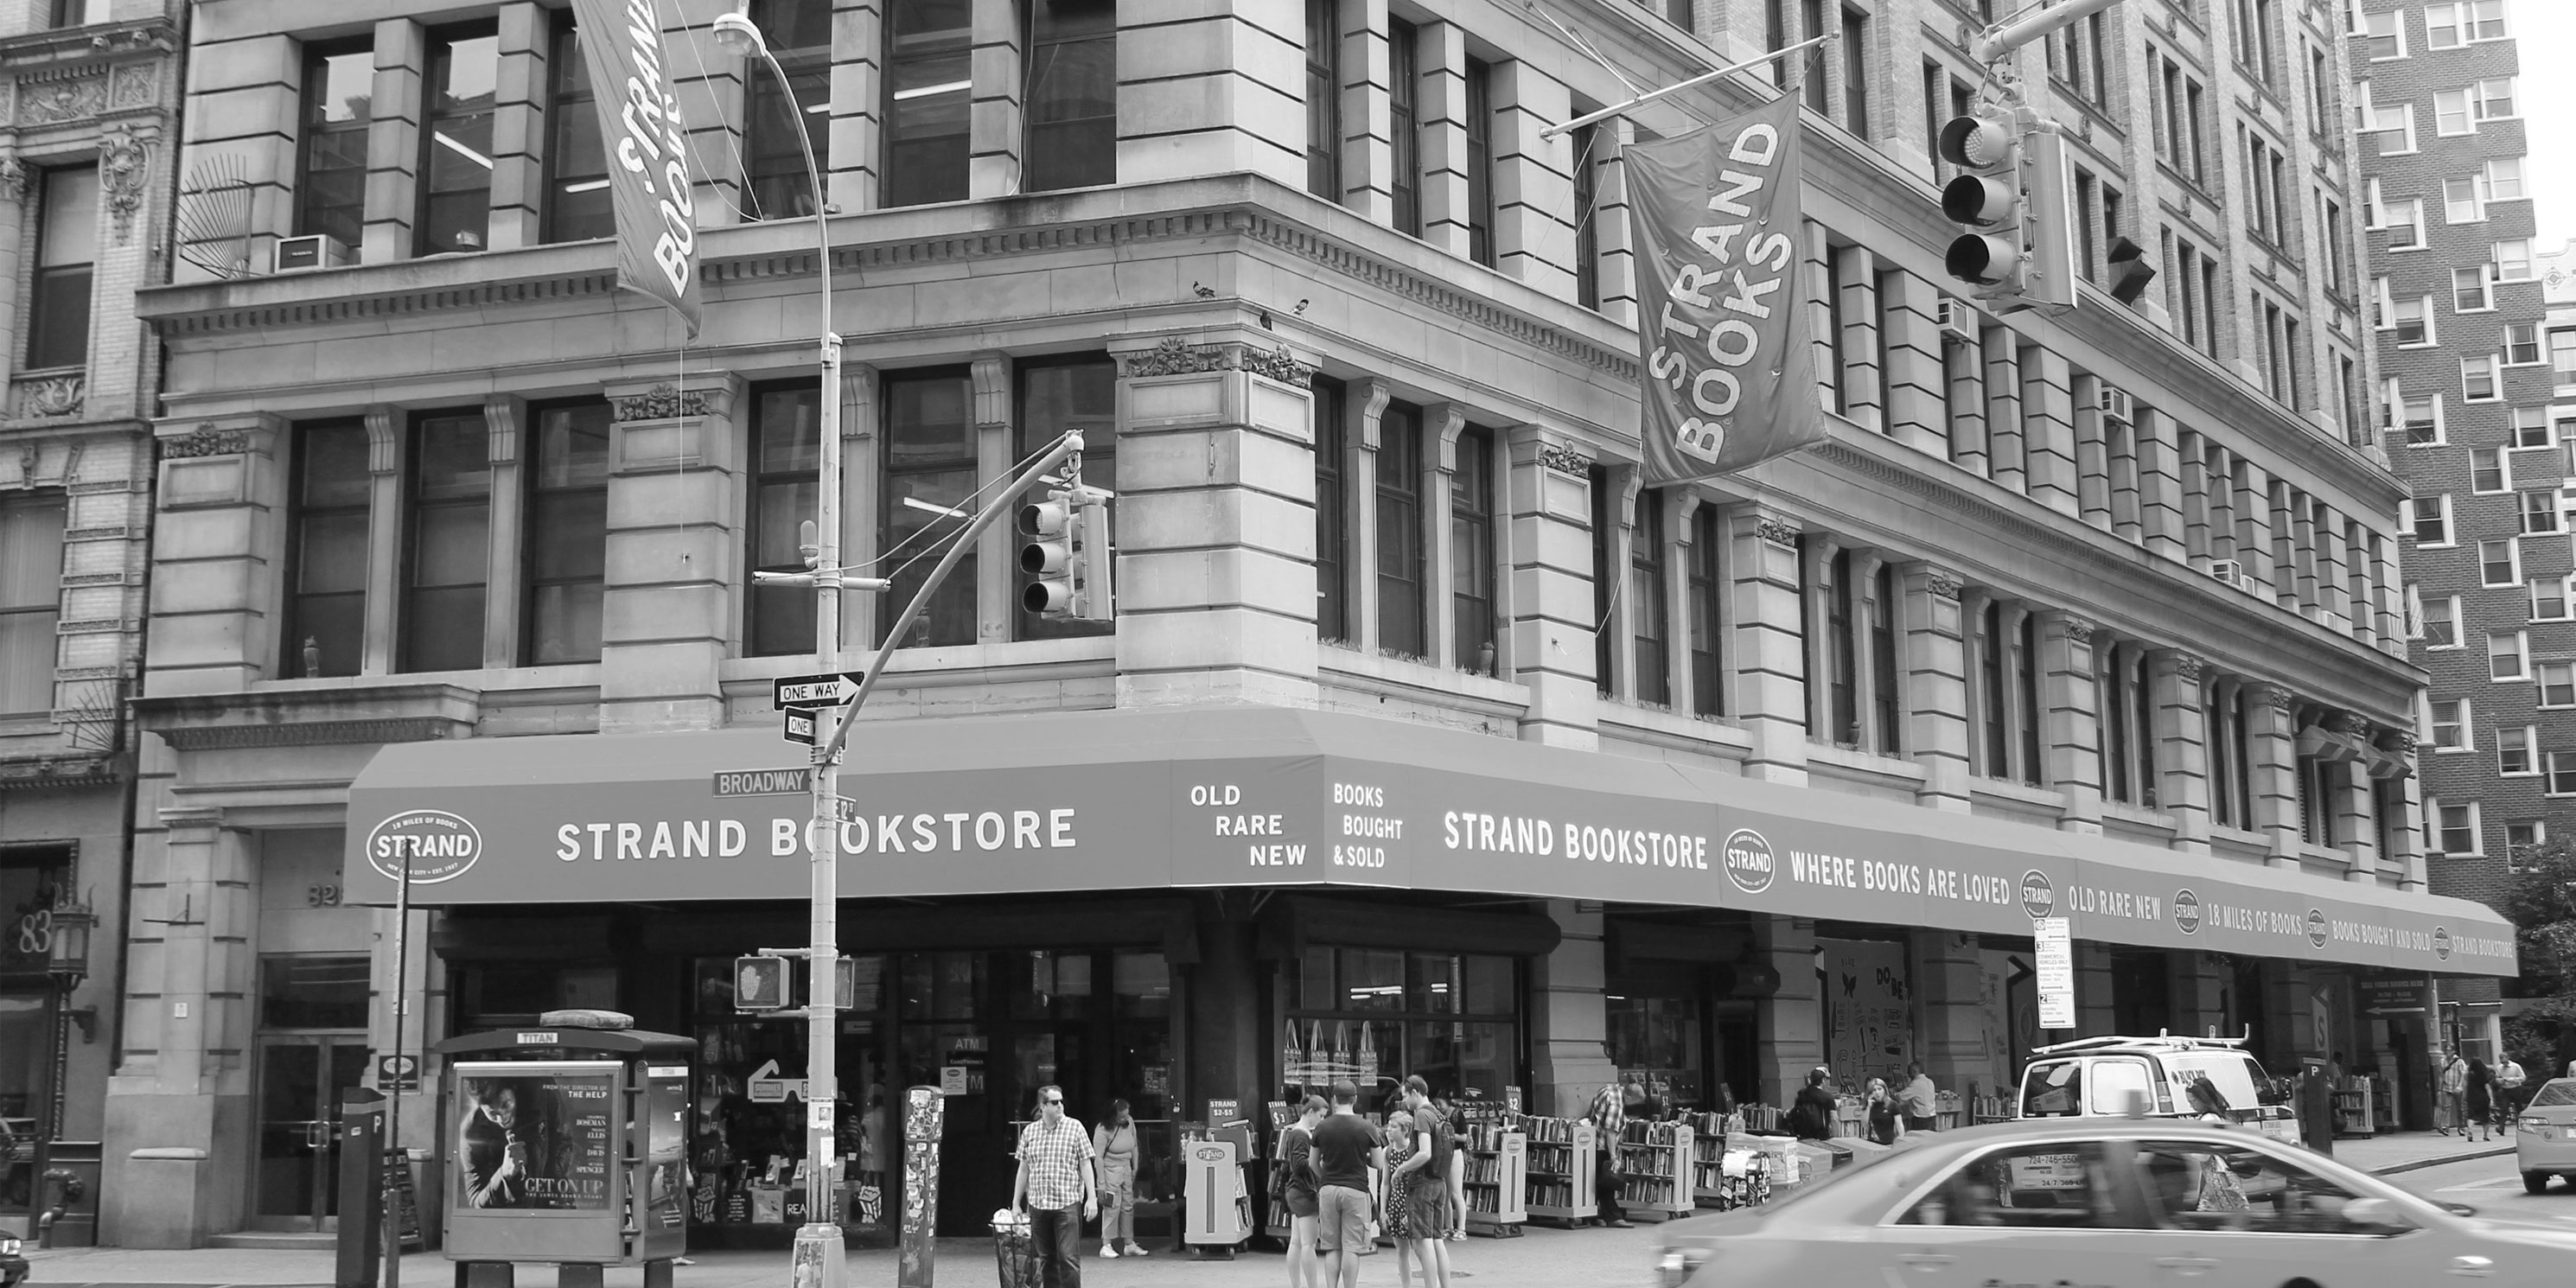 exterior of the Strand Bookstore at 826 Broadway